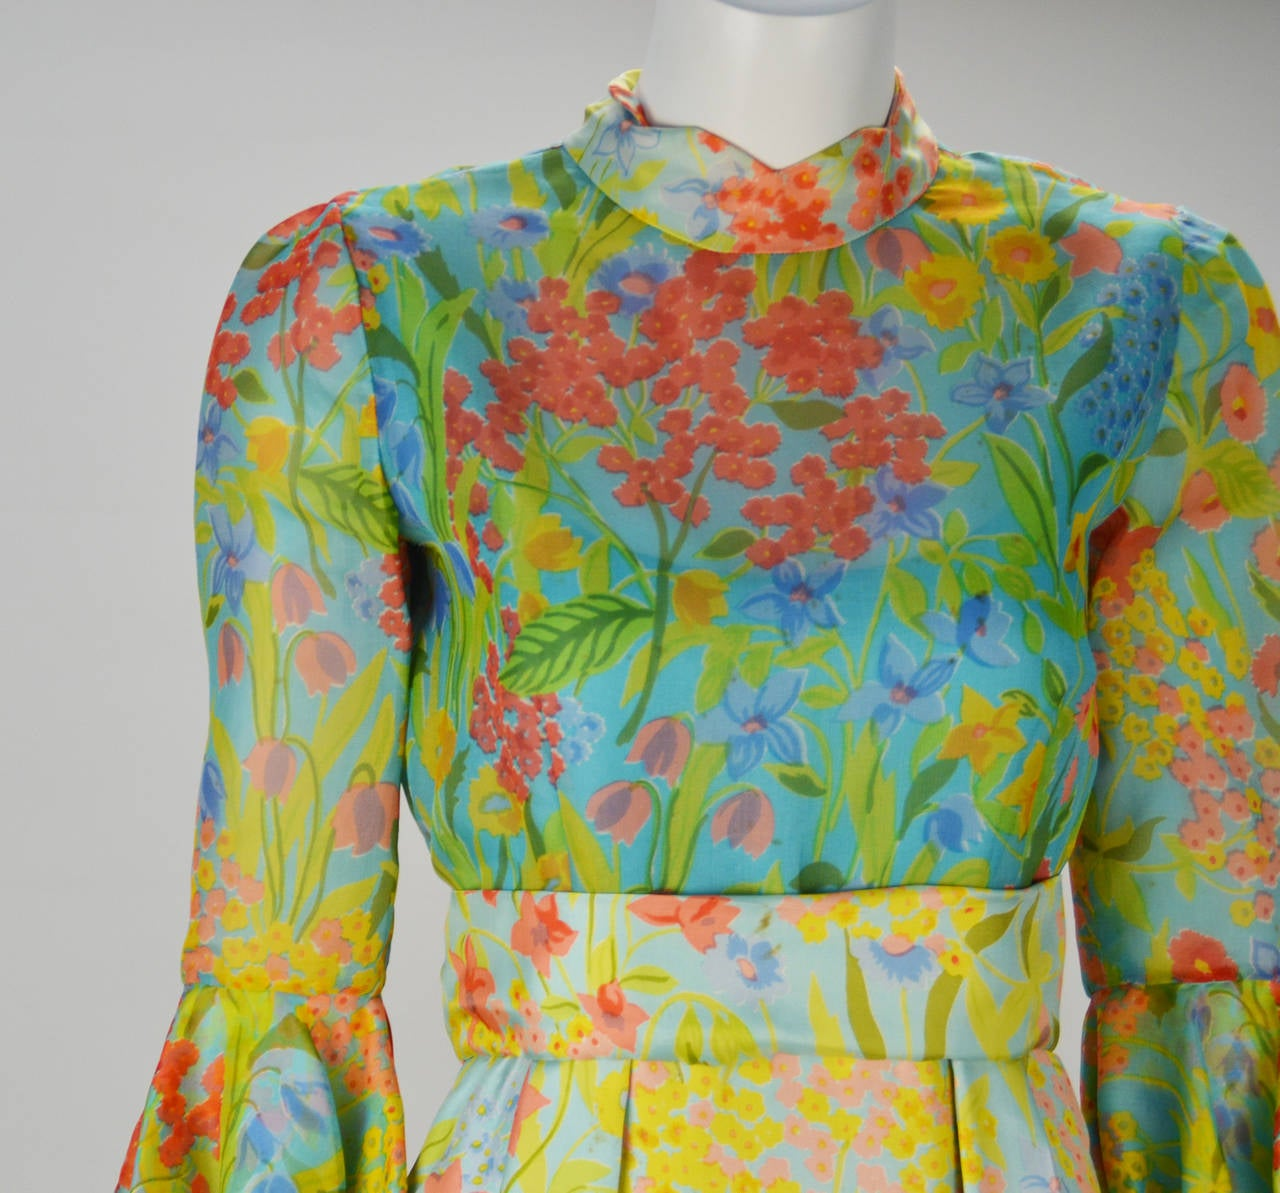 1960s Tina Leser Original Floral Print Dress In Good Condition For Sale In Houston, TX